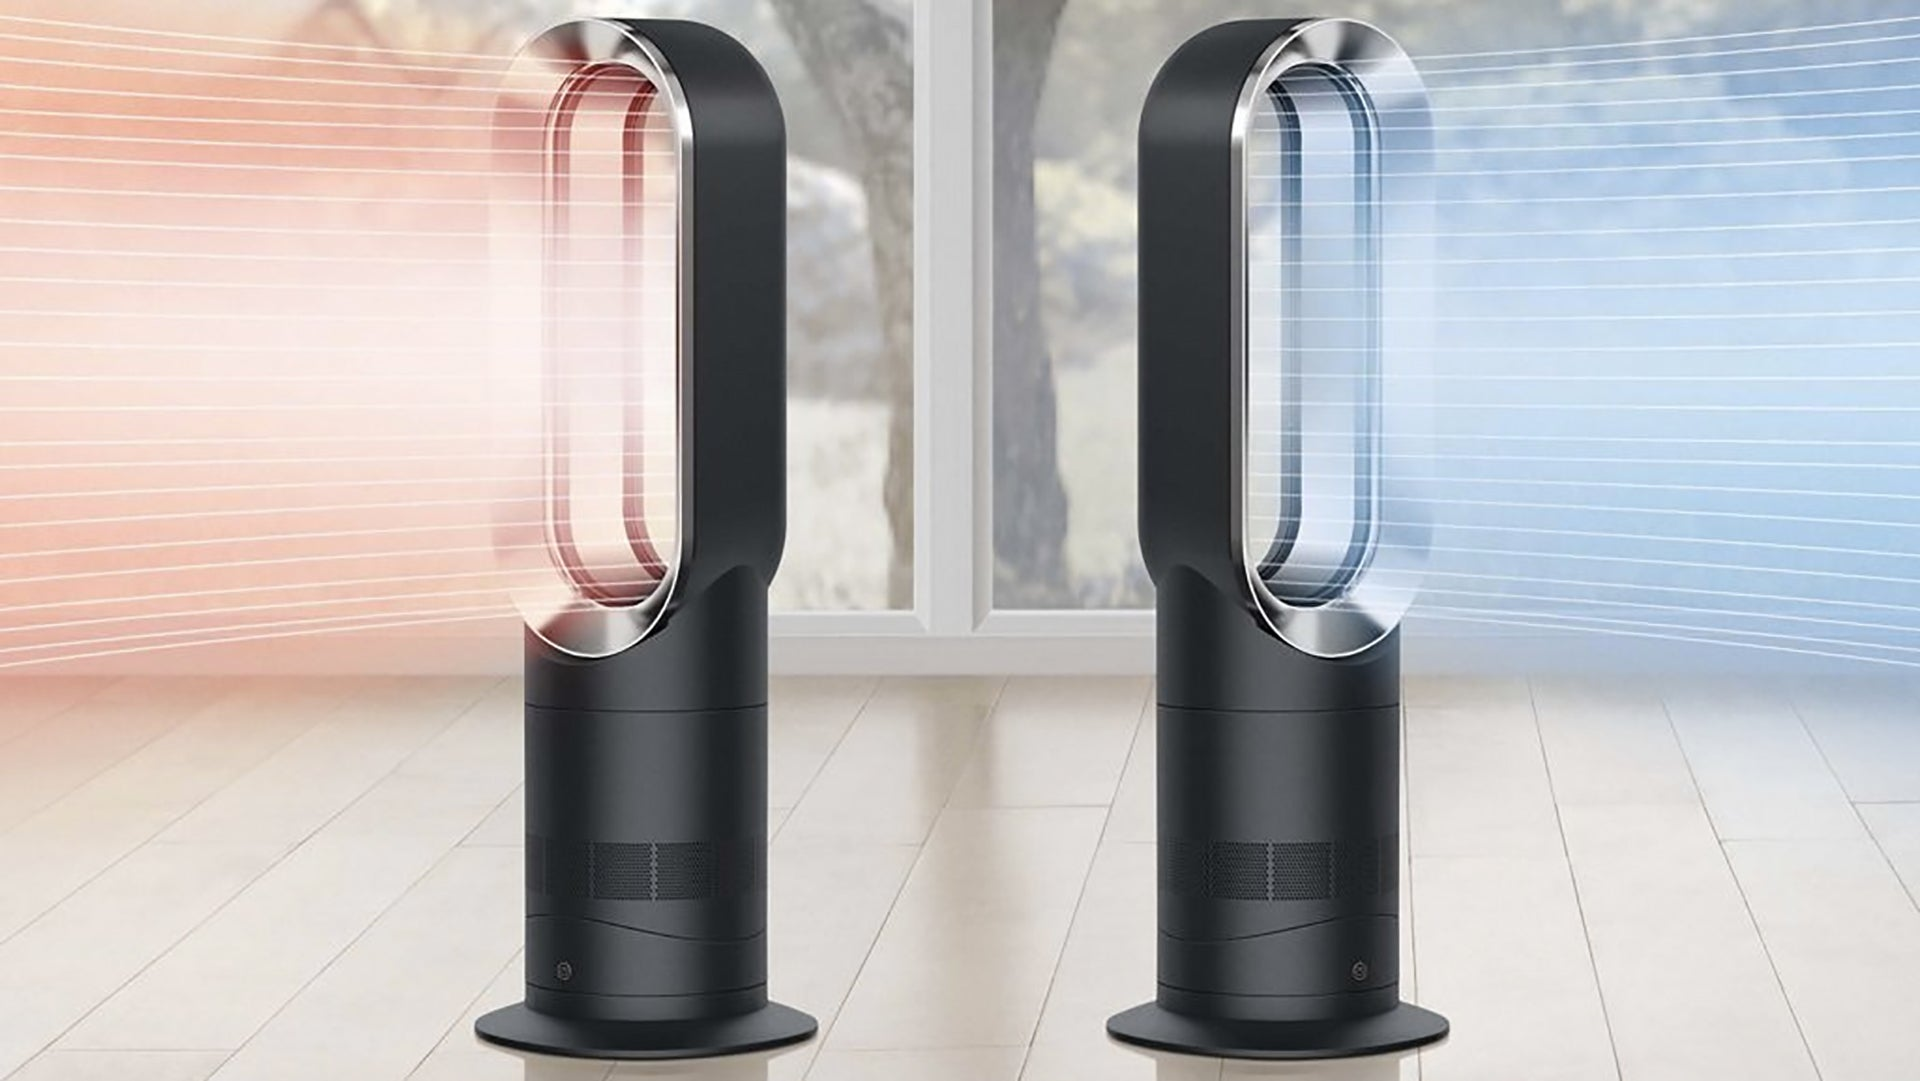 Dyson S Bladeless Fan Heater Has Just Been Price Slashed